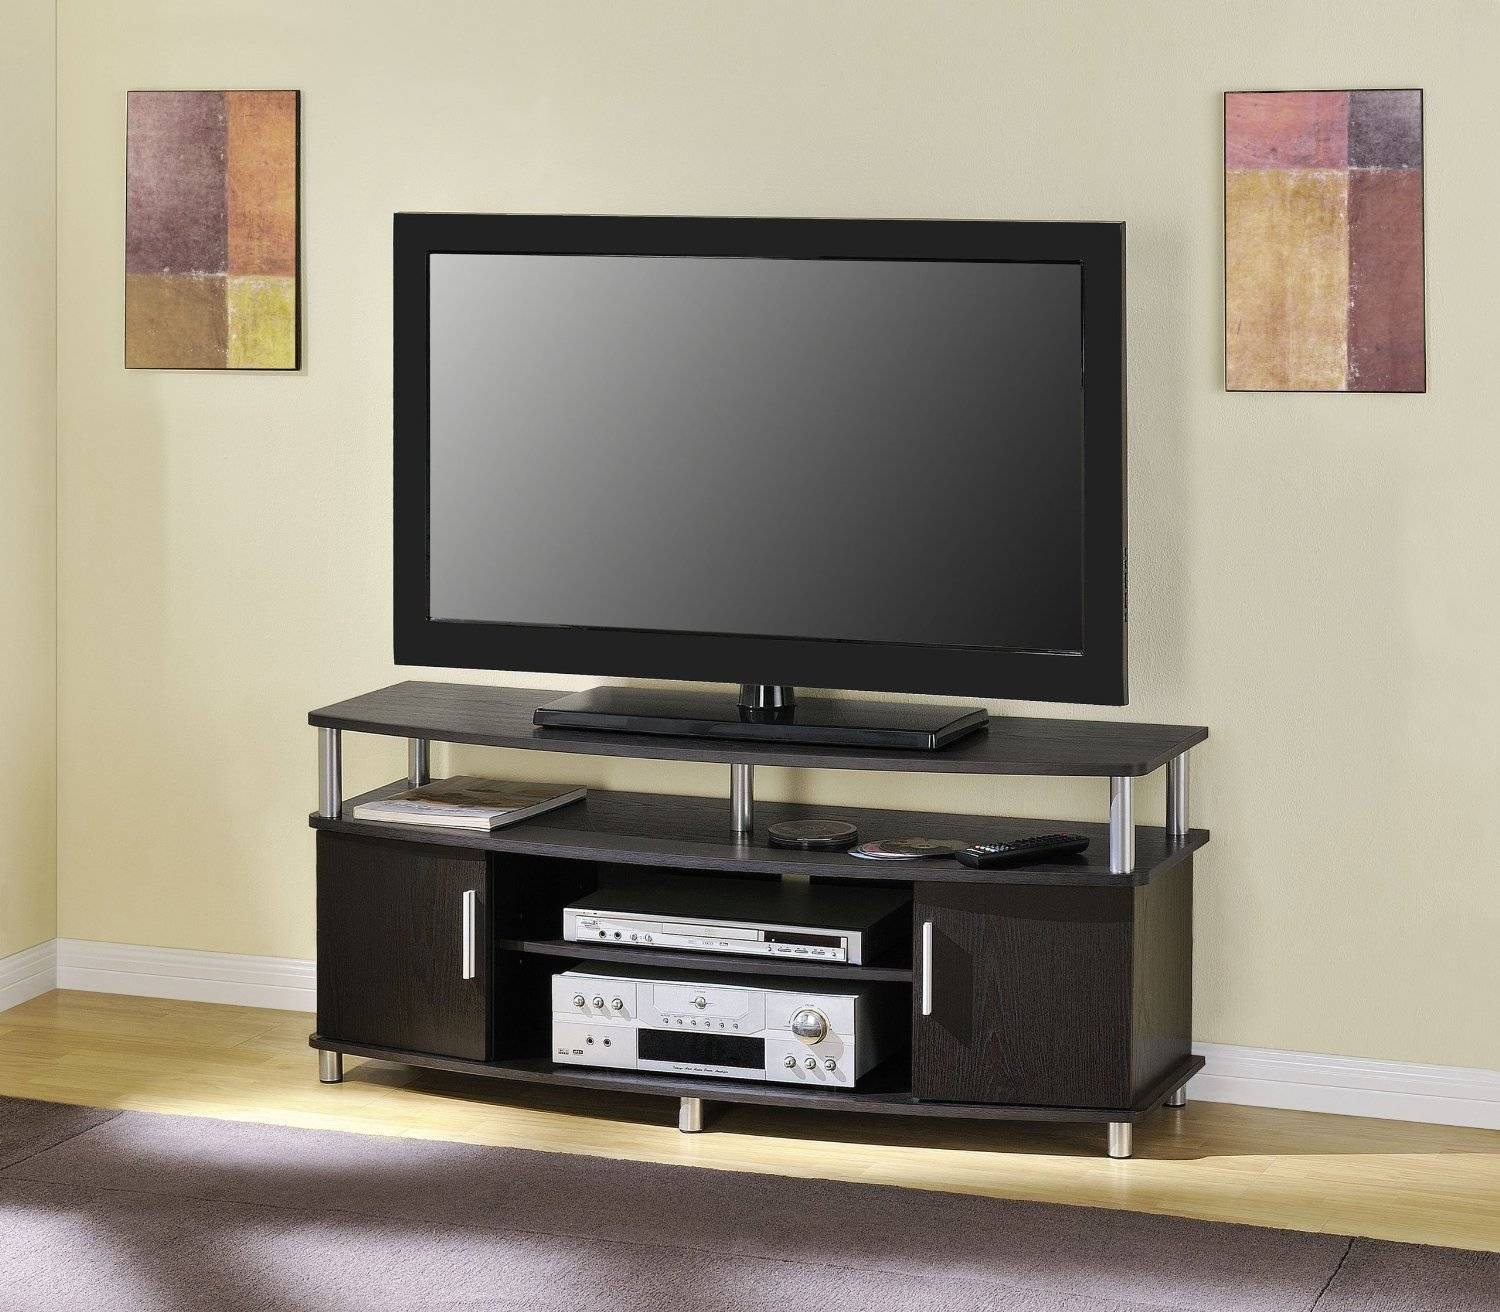 Flat Screen Tv Setup Ideas 15 Ideas Of Modern Tv Stands For 60 Inch Tvs